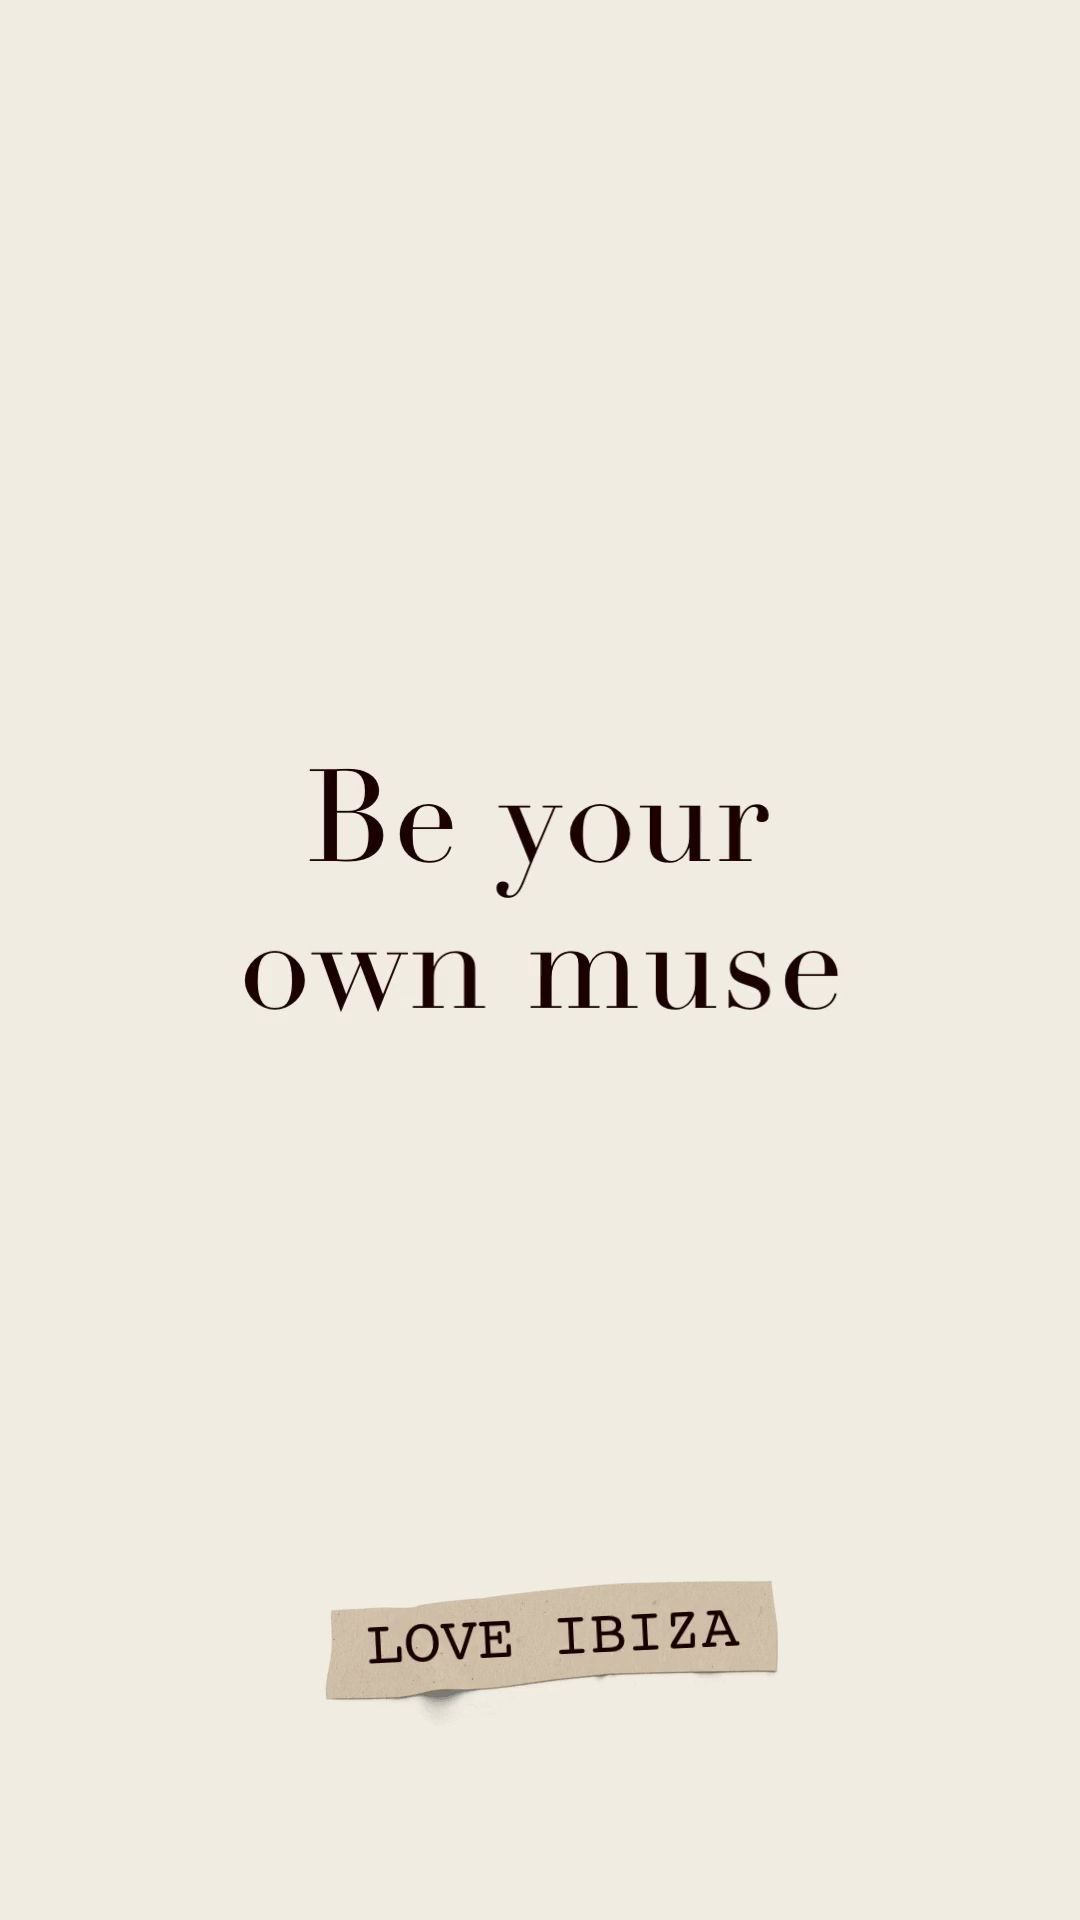 Be your own muse – quote